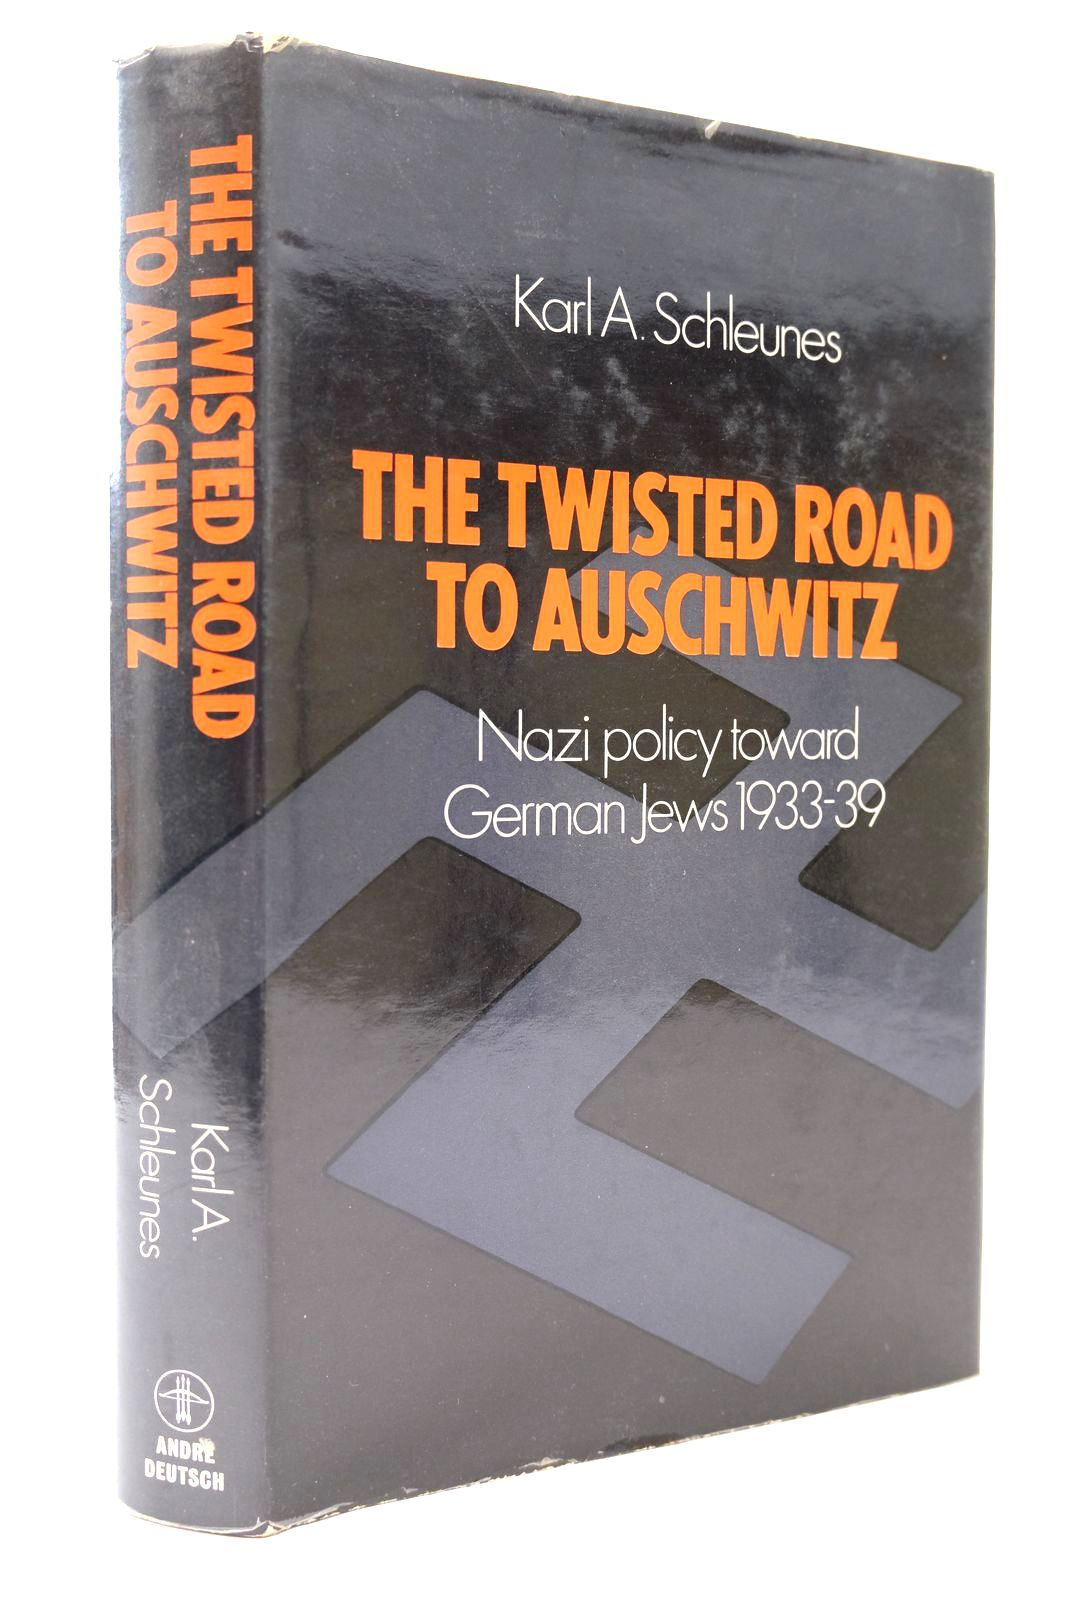 Photo of THE TWISTED ROAD TO AUSCHWITZ written by Schleunes, Karl A. published by Andre Deutsch (STOCK CODE: 2131904)  for sale by Stella & Rose's Books